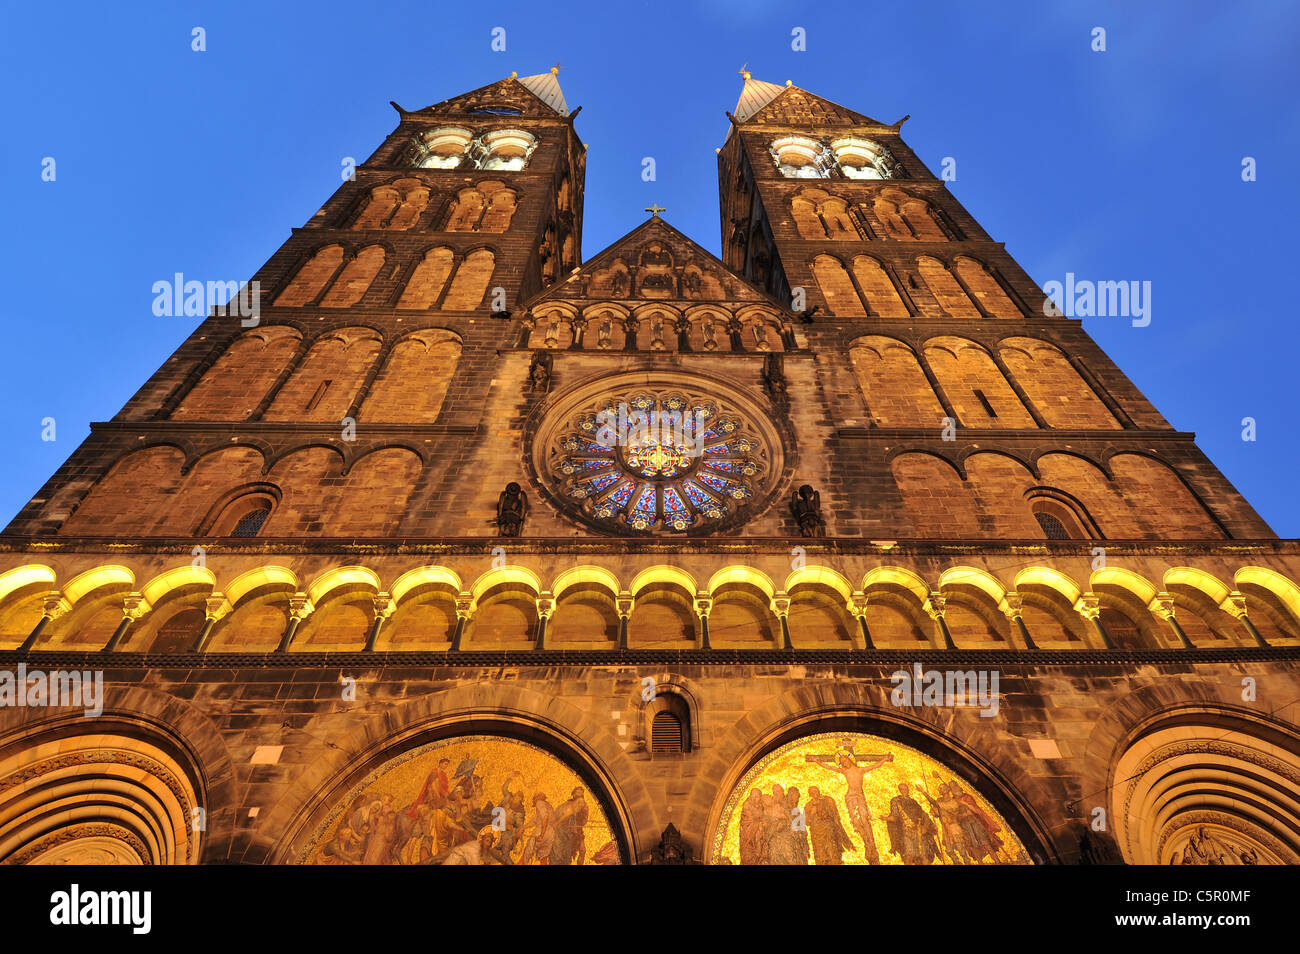 cathedral St. Petri in the old town of Bremen, Hansa, Germany, 2011 Stock Photo